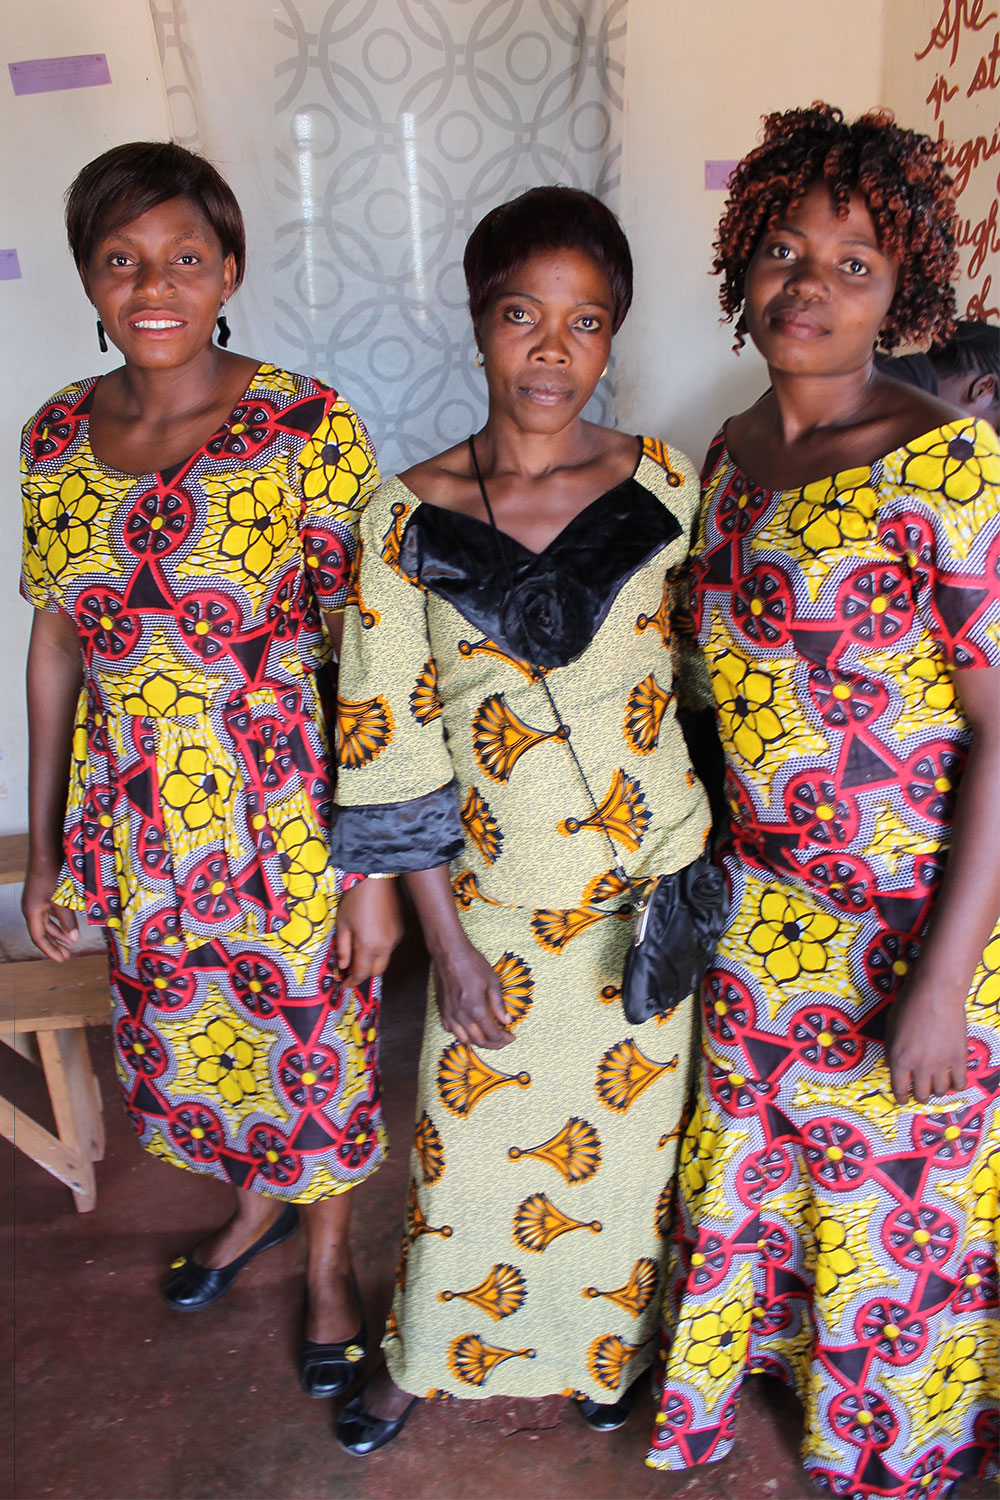 Many ladies, especially CiH graduates, choose to show off their skills with their own dress designs by creating gorgeous custom dresses for themselves. Aren't they stunning?!